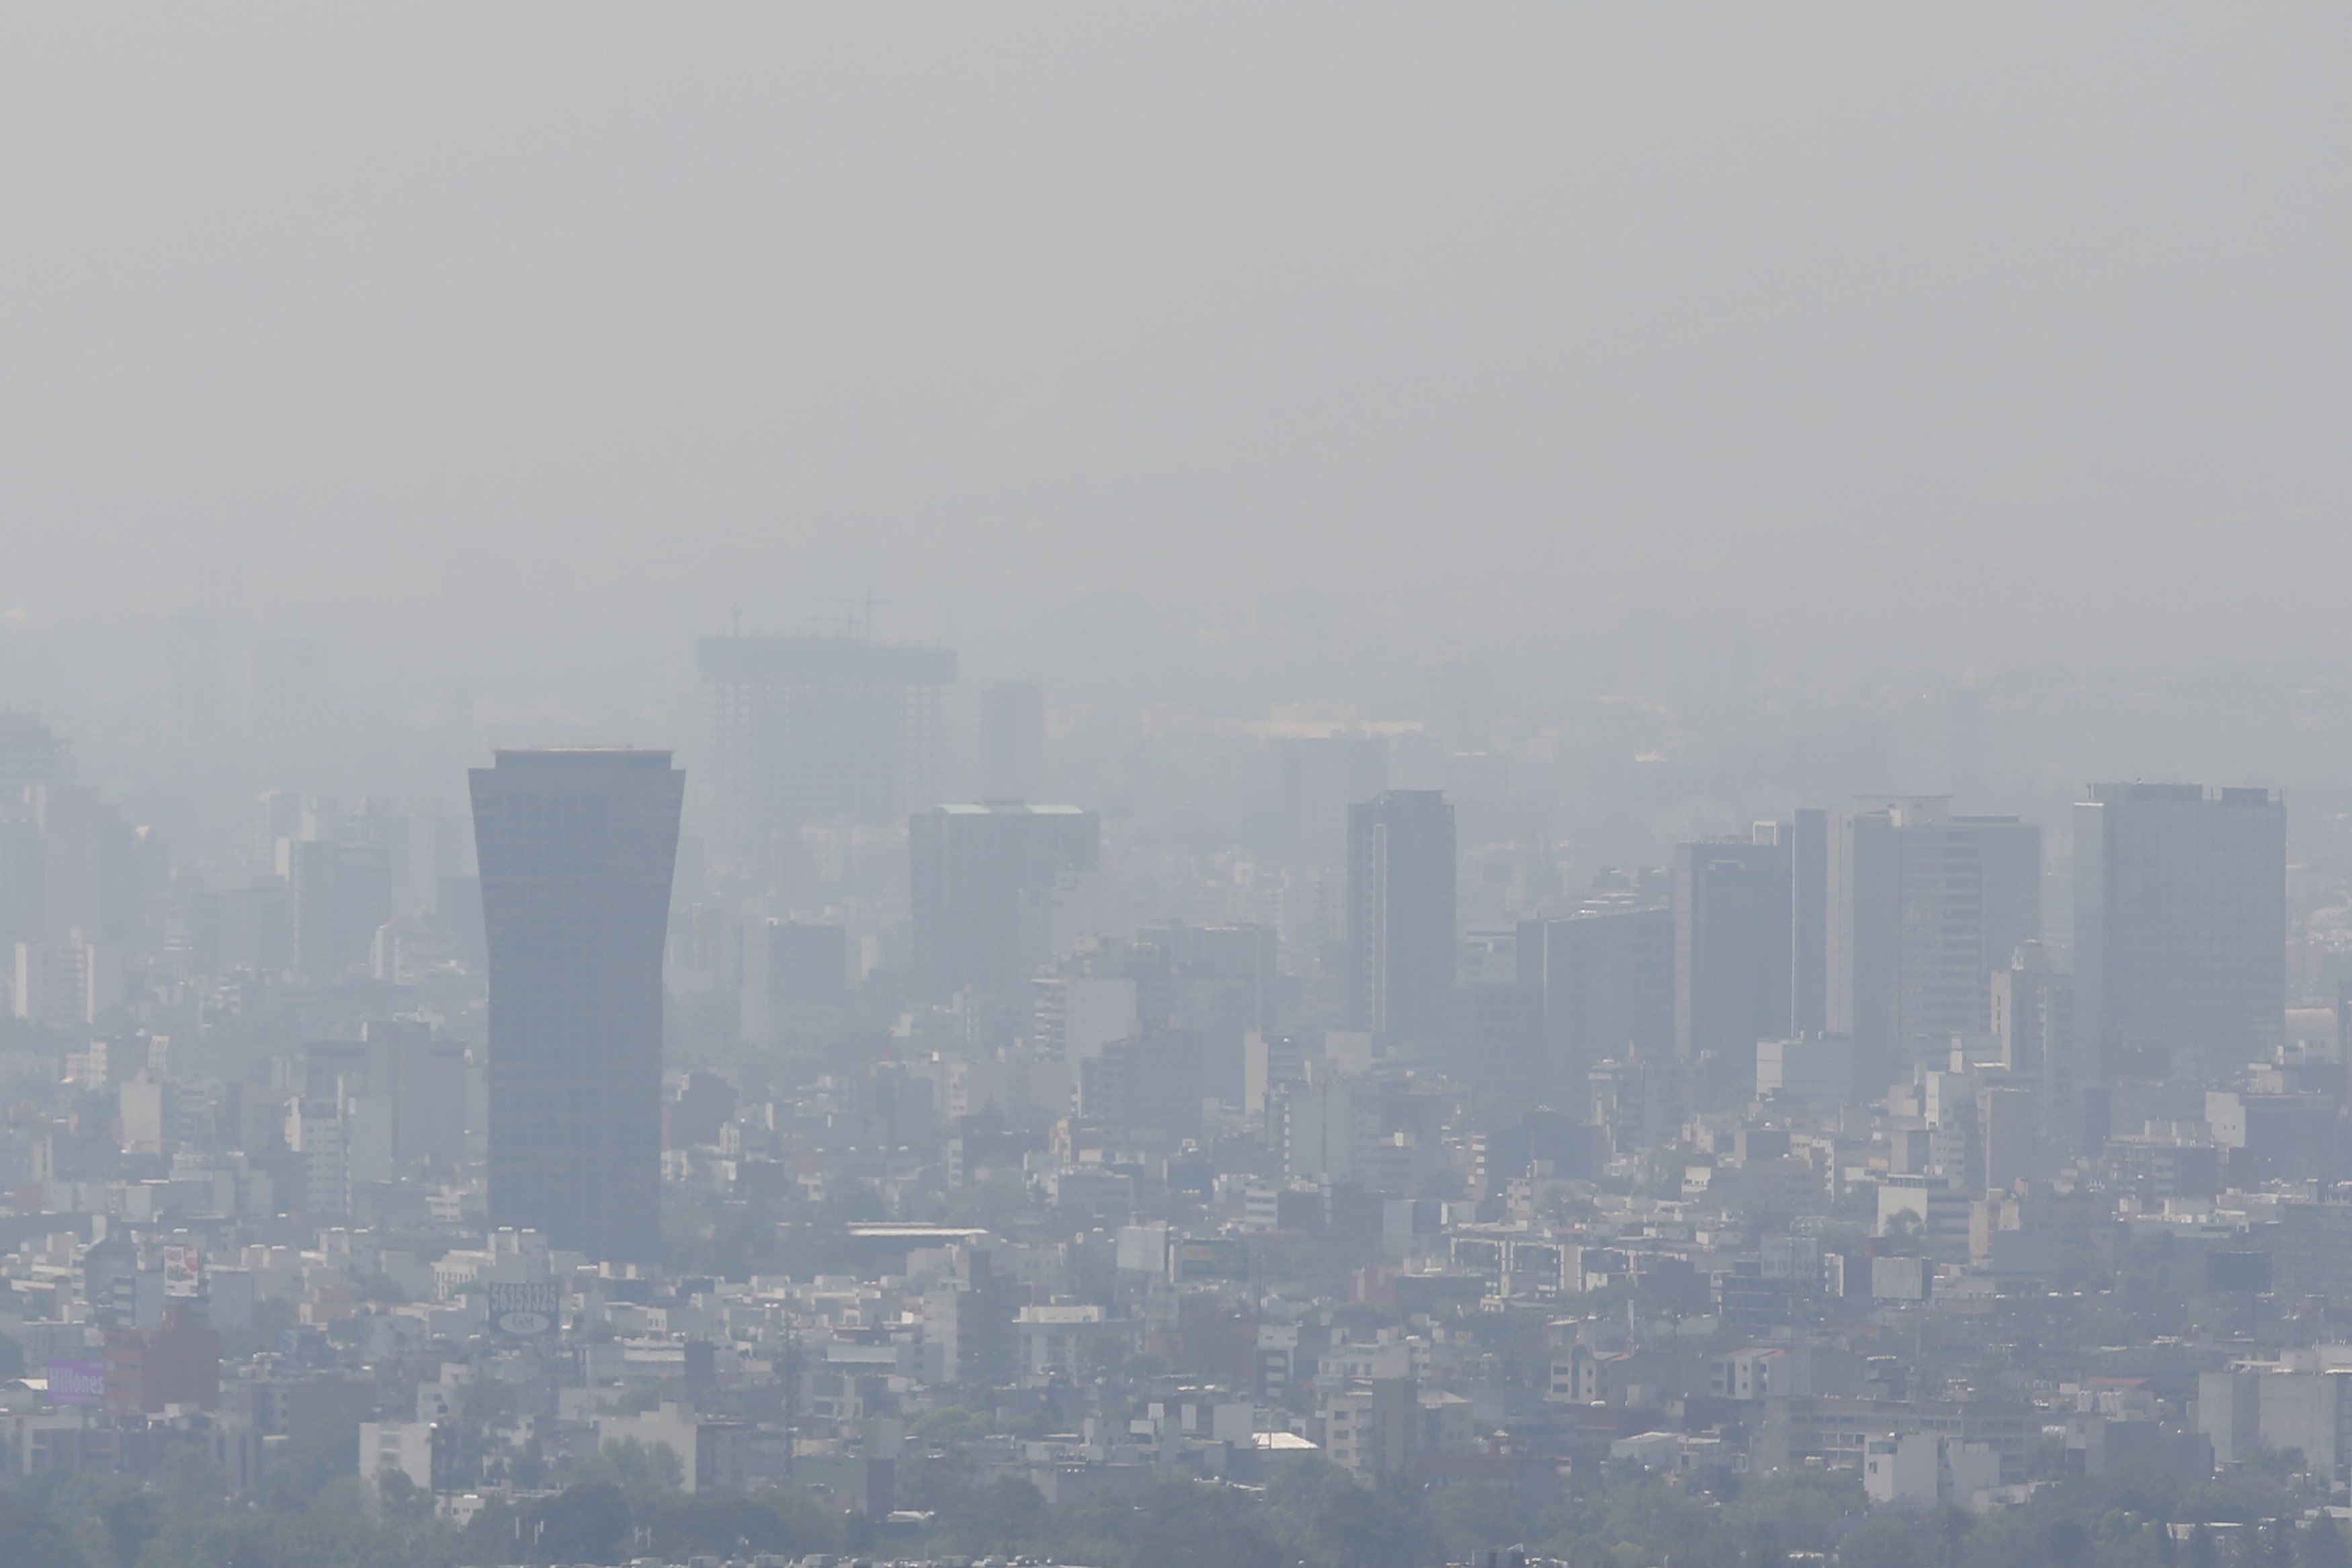 Mexico City may be backsliding on air pollution | Citiscope